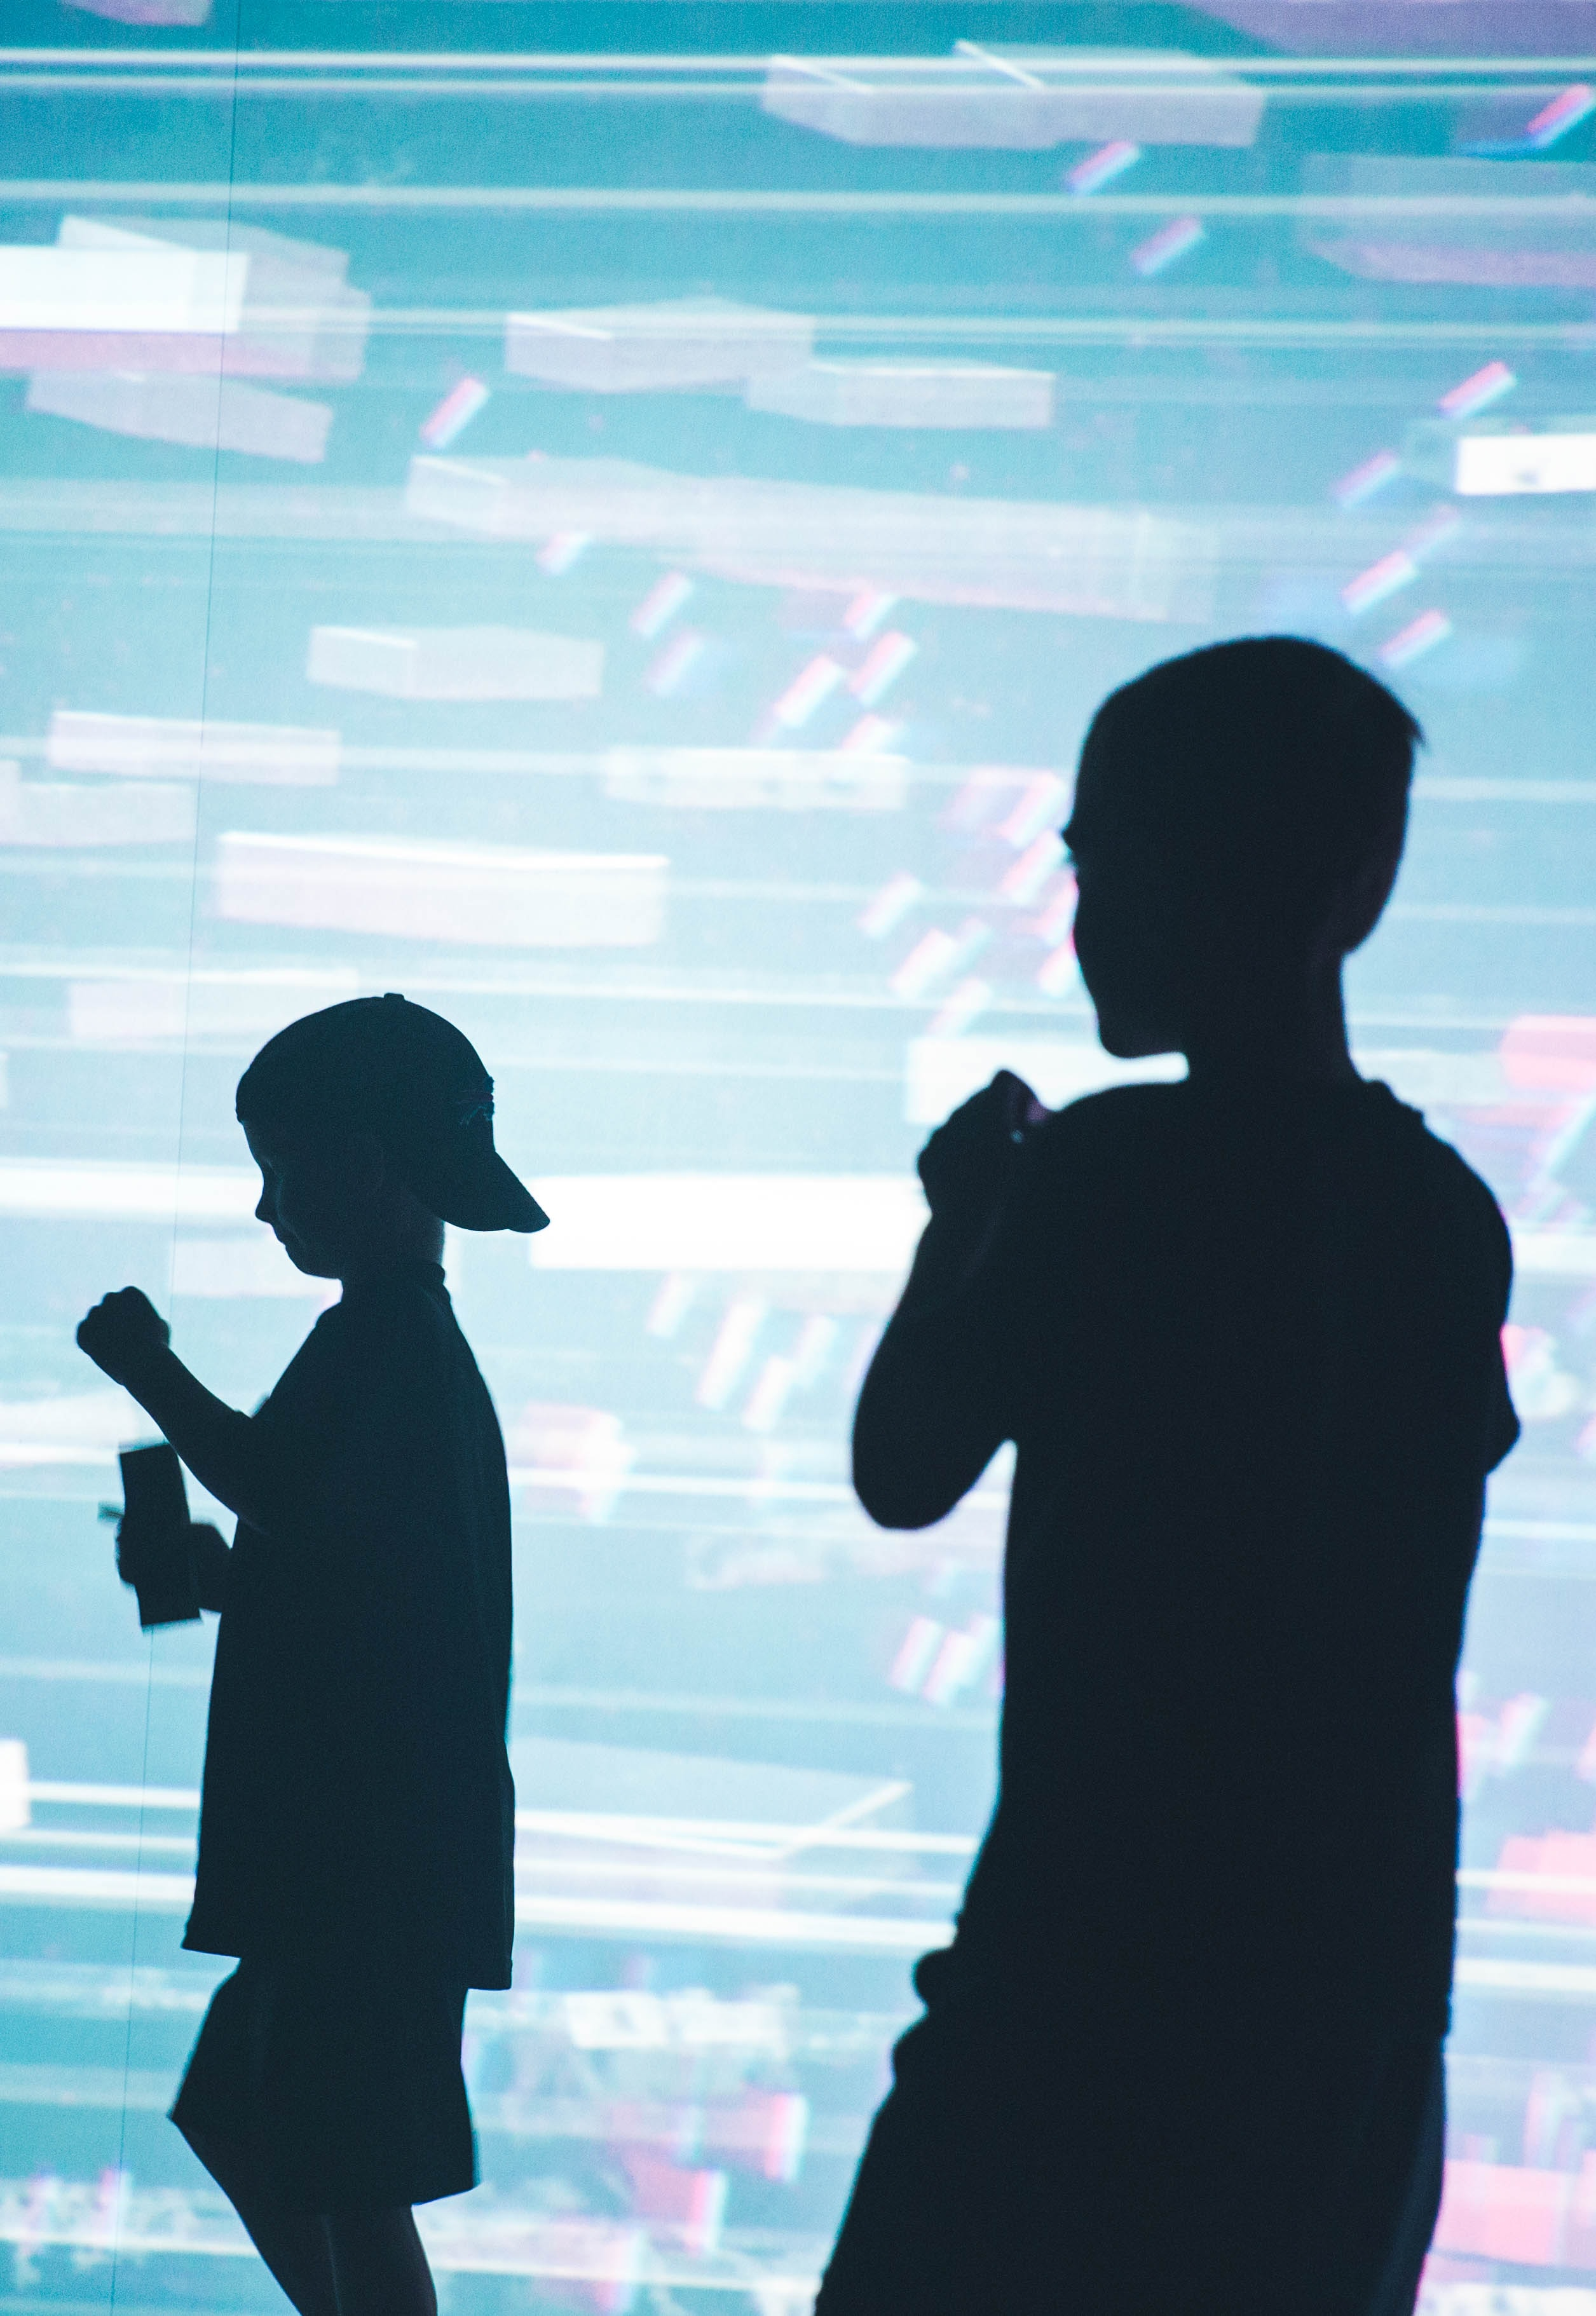 two silhouette of boys